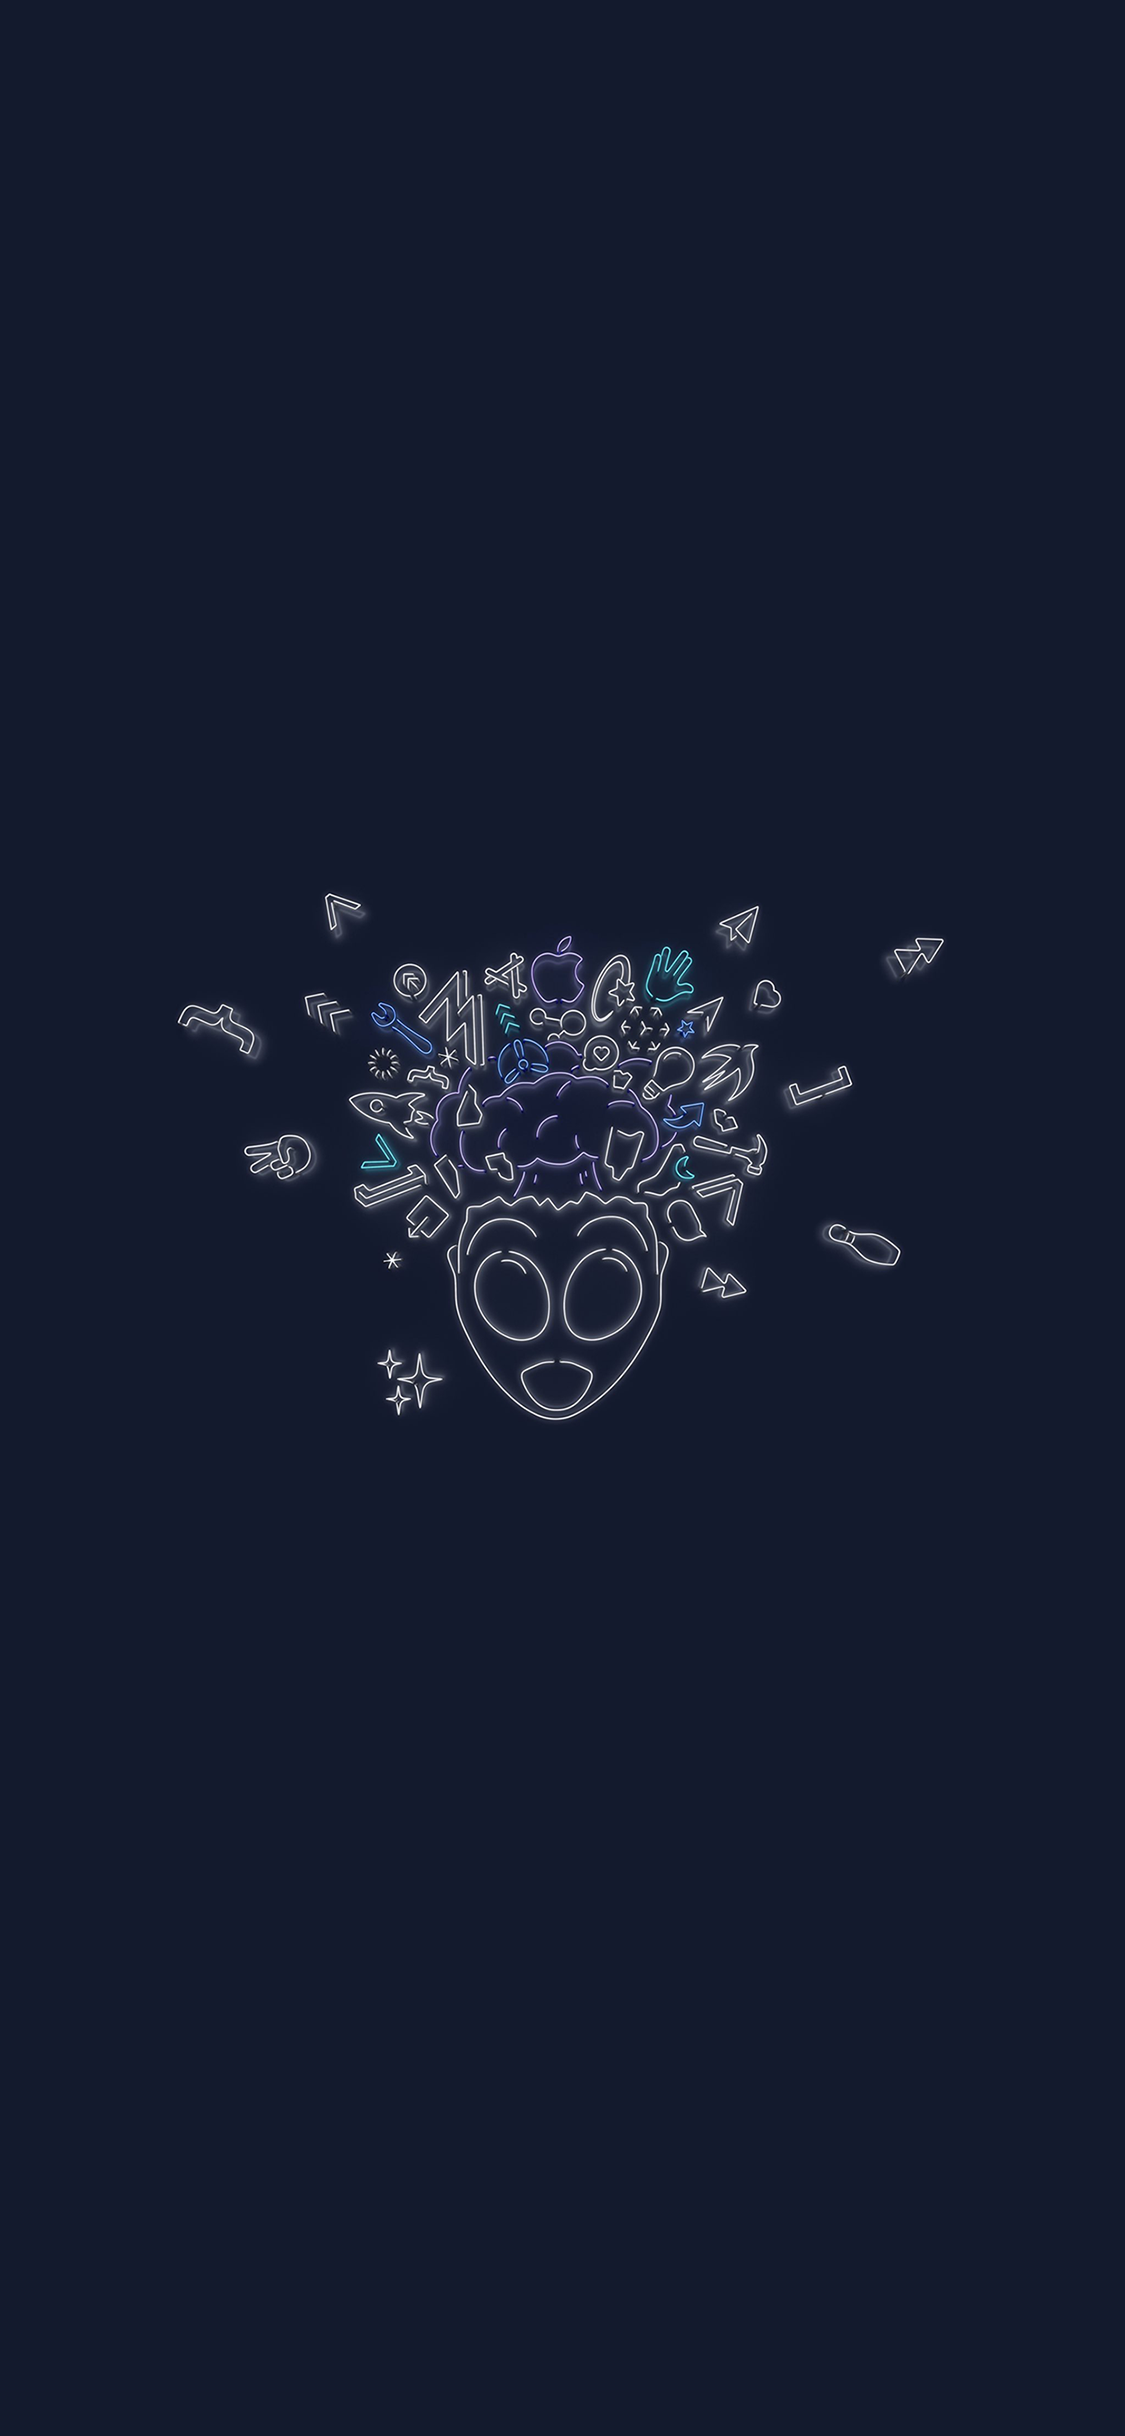 Download The Wwdc 2019 Dark Mode Themed Wallpapers For Iphone